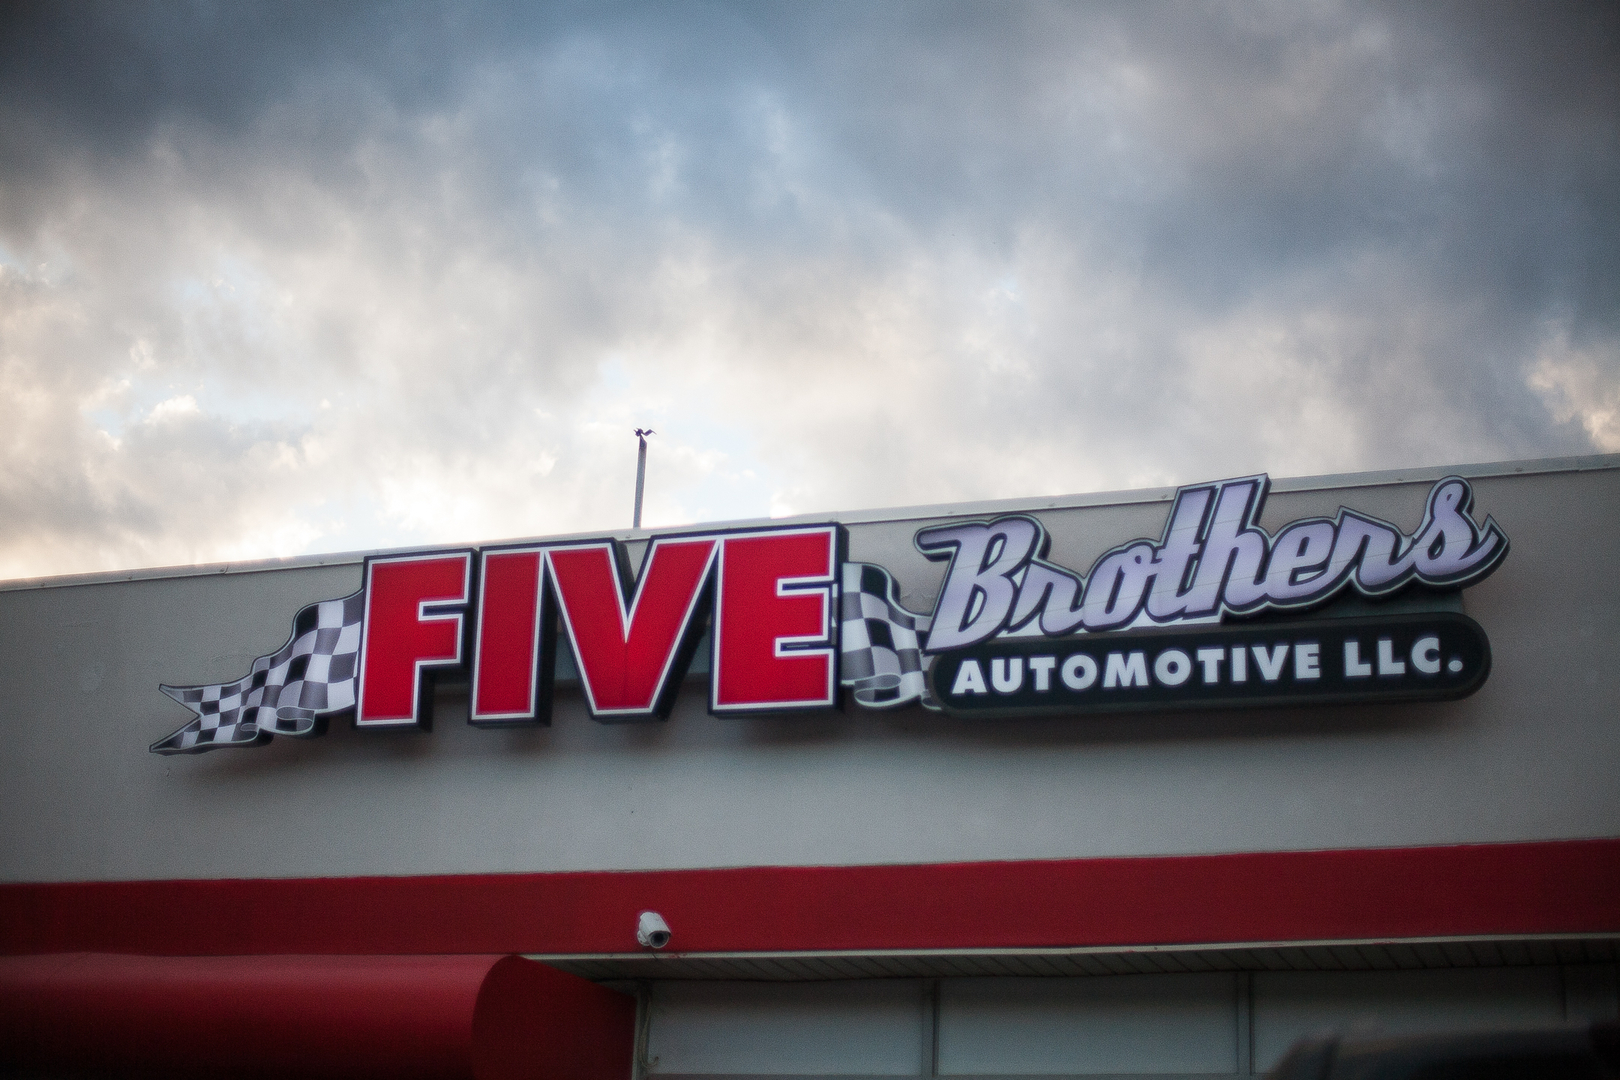 Bodyshop Services, Mechanical Services - Five Brothers